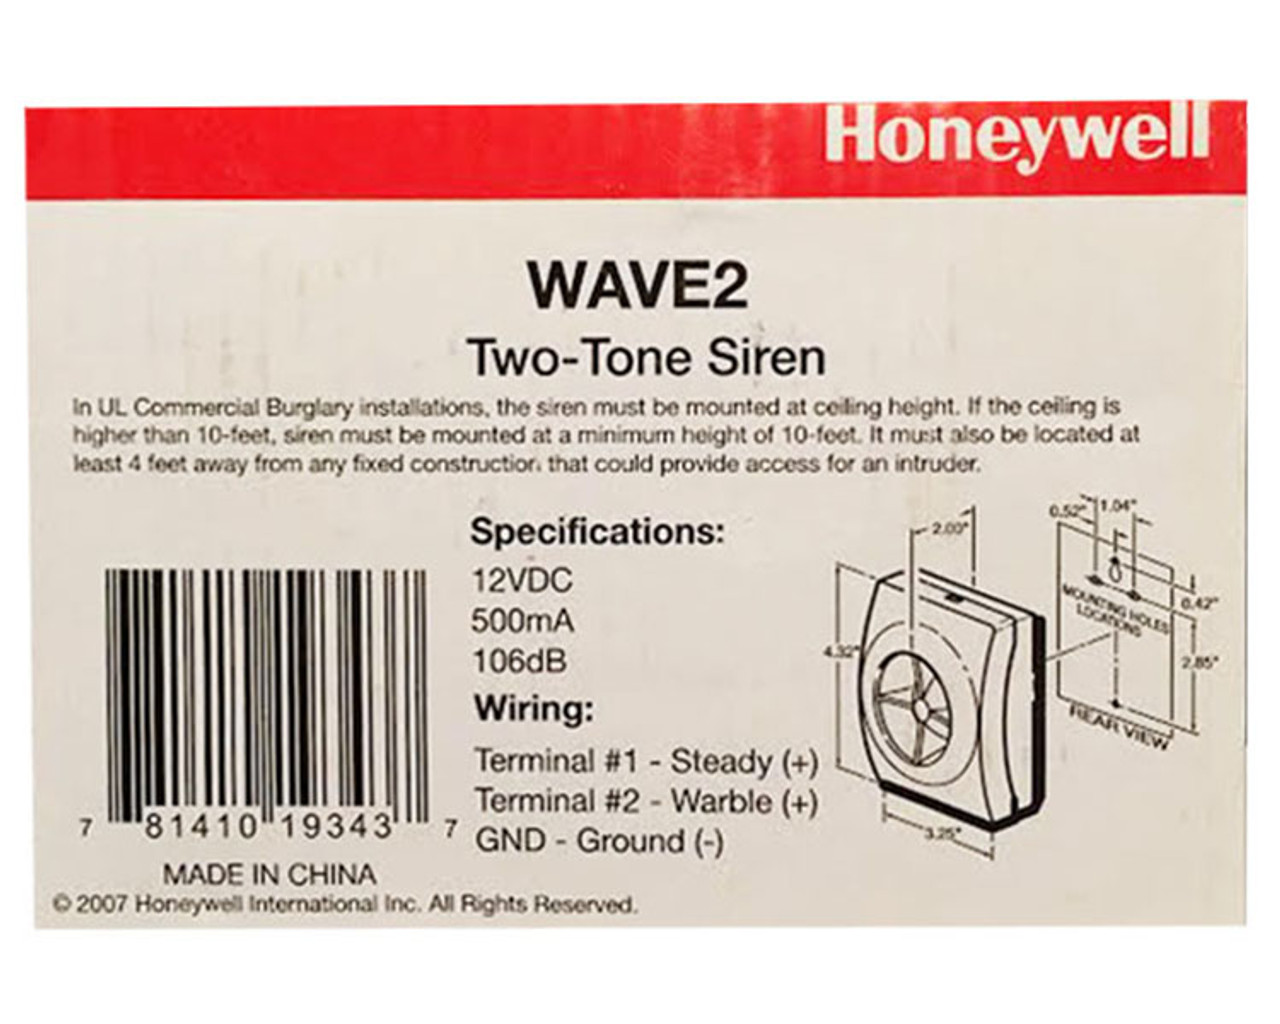 Honeywell Wave2 Siren